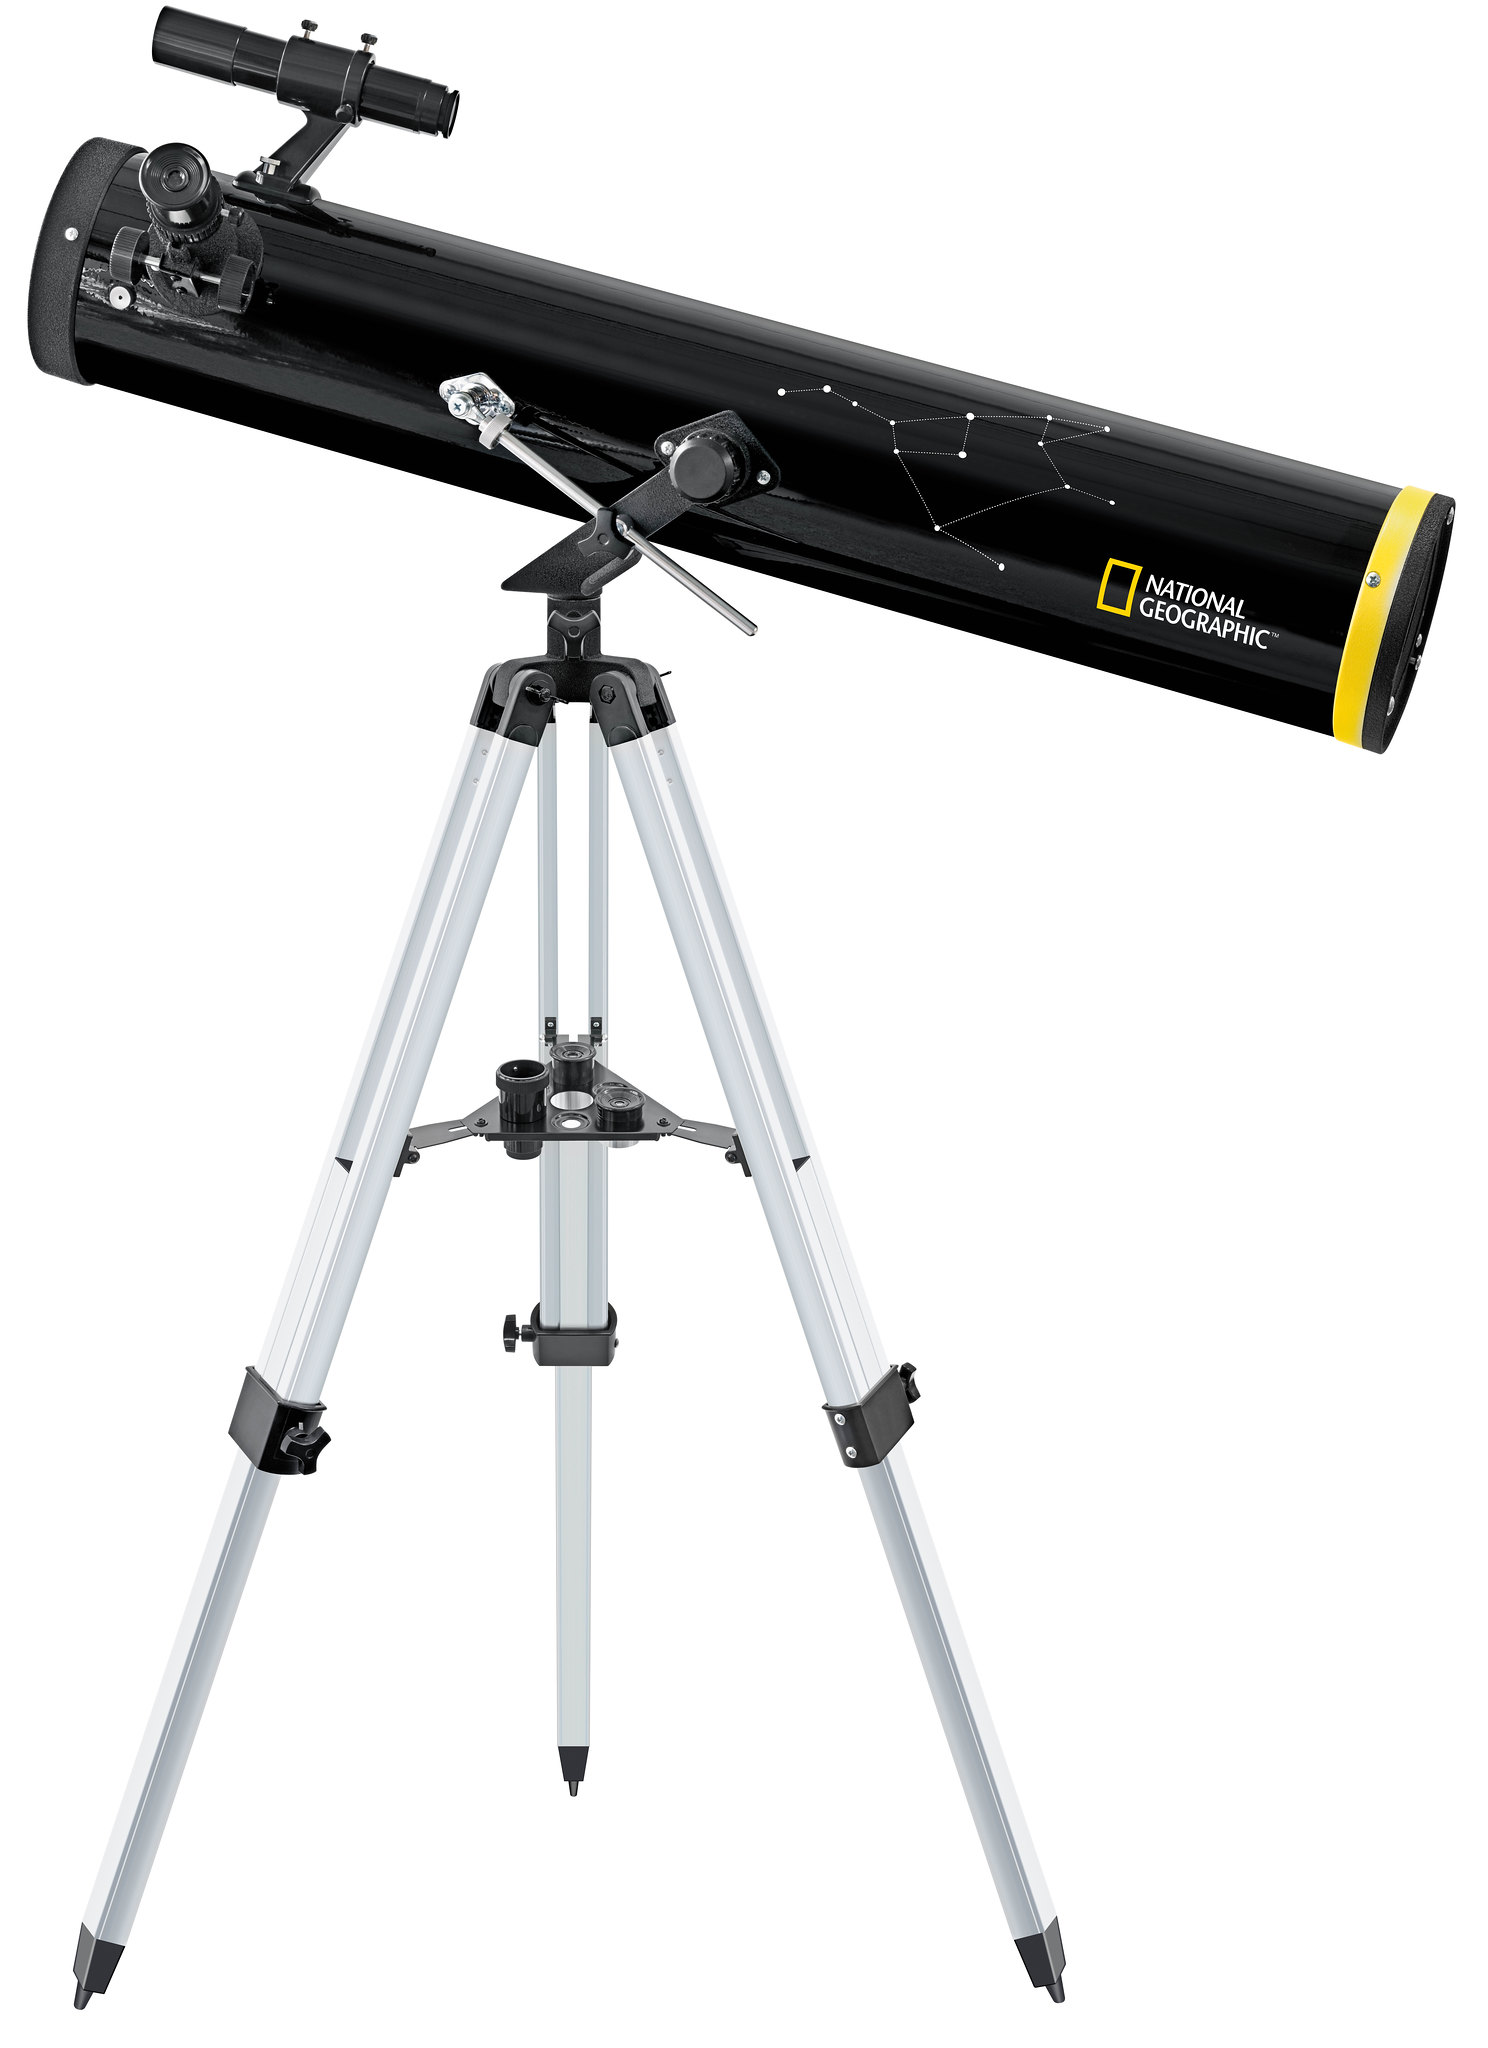 REFLECTOR TELESCOPE NATIONAL GEOGRAPHIC